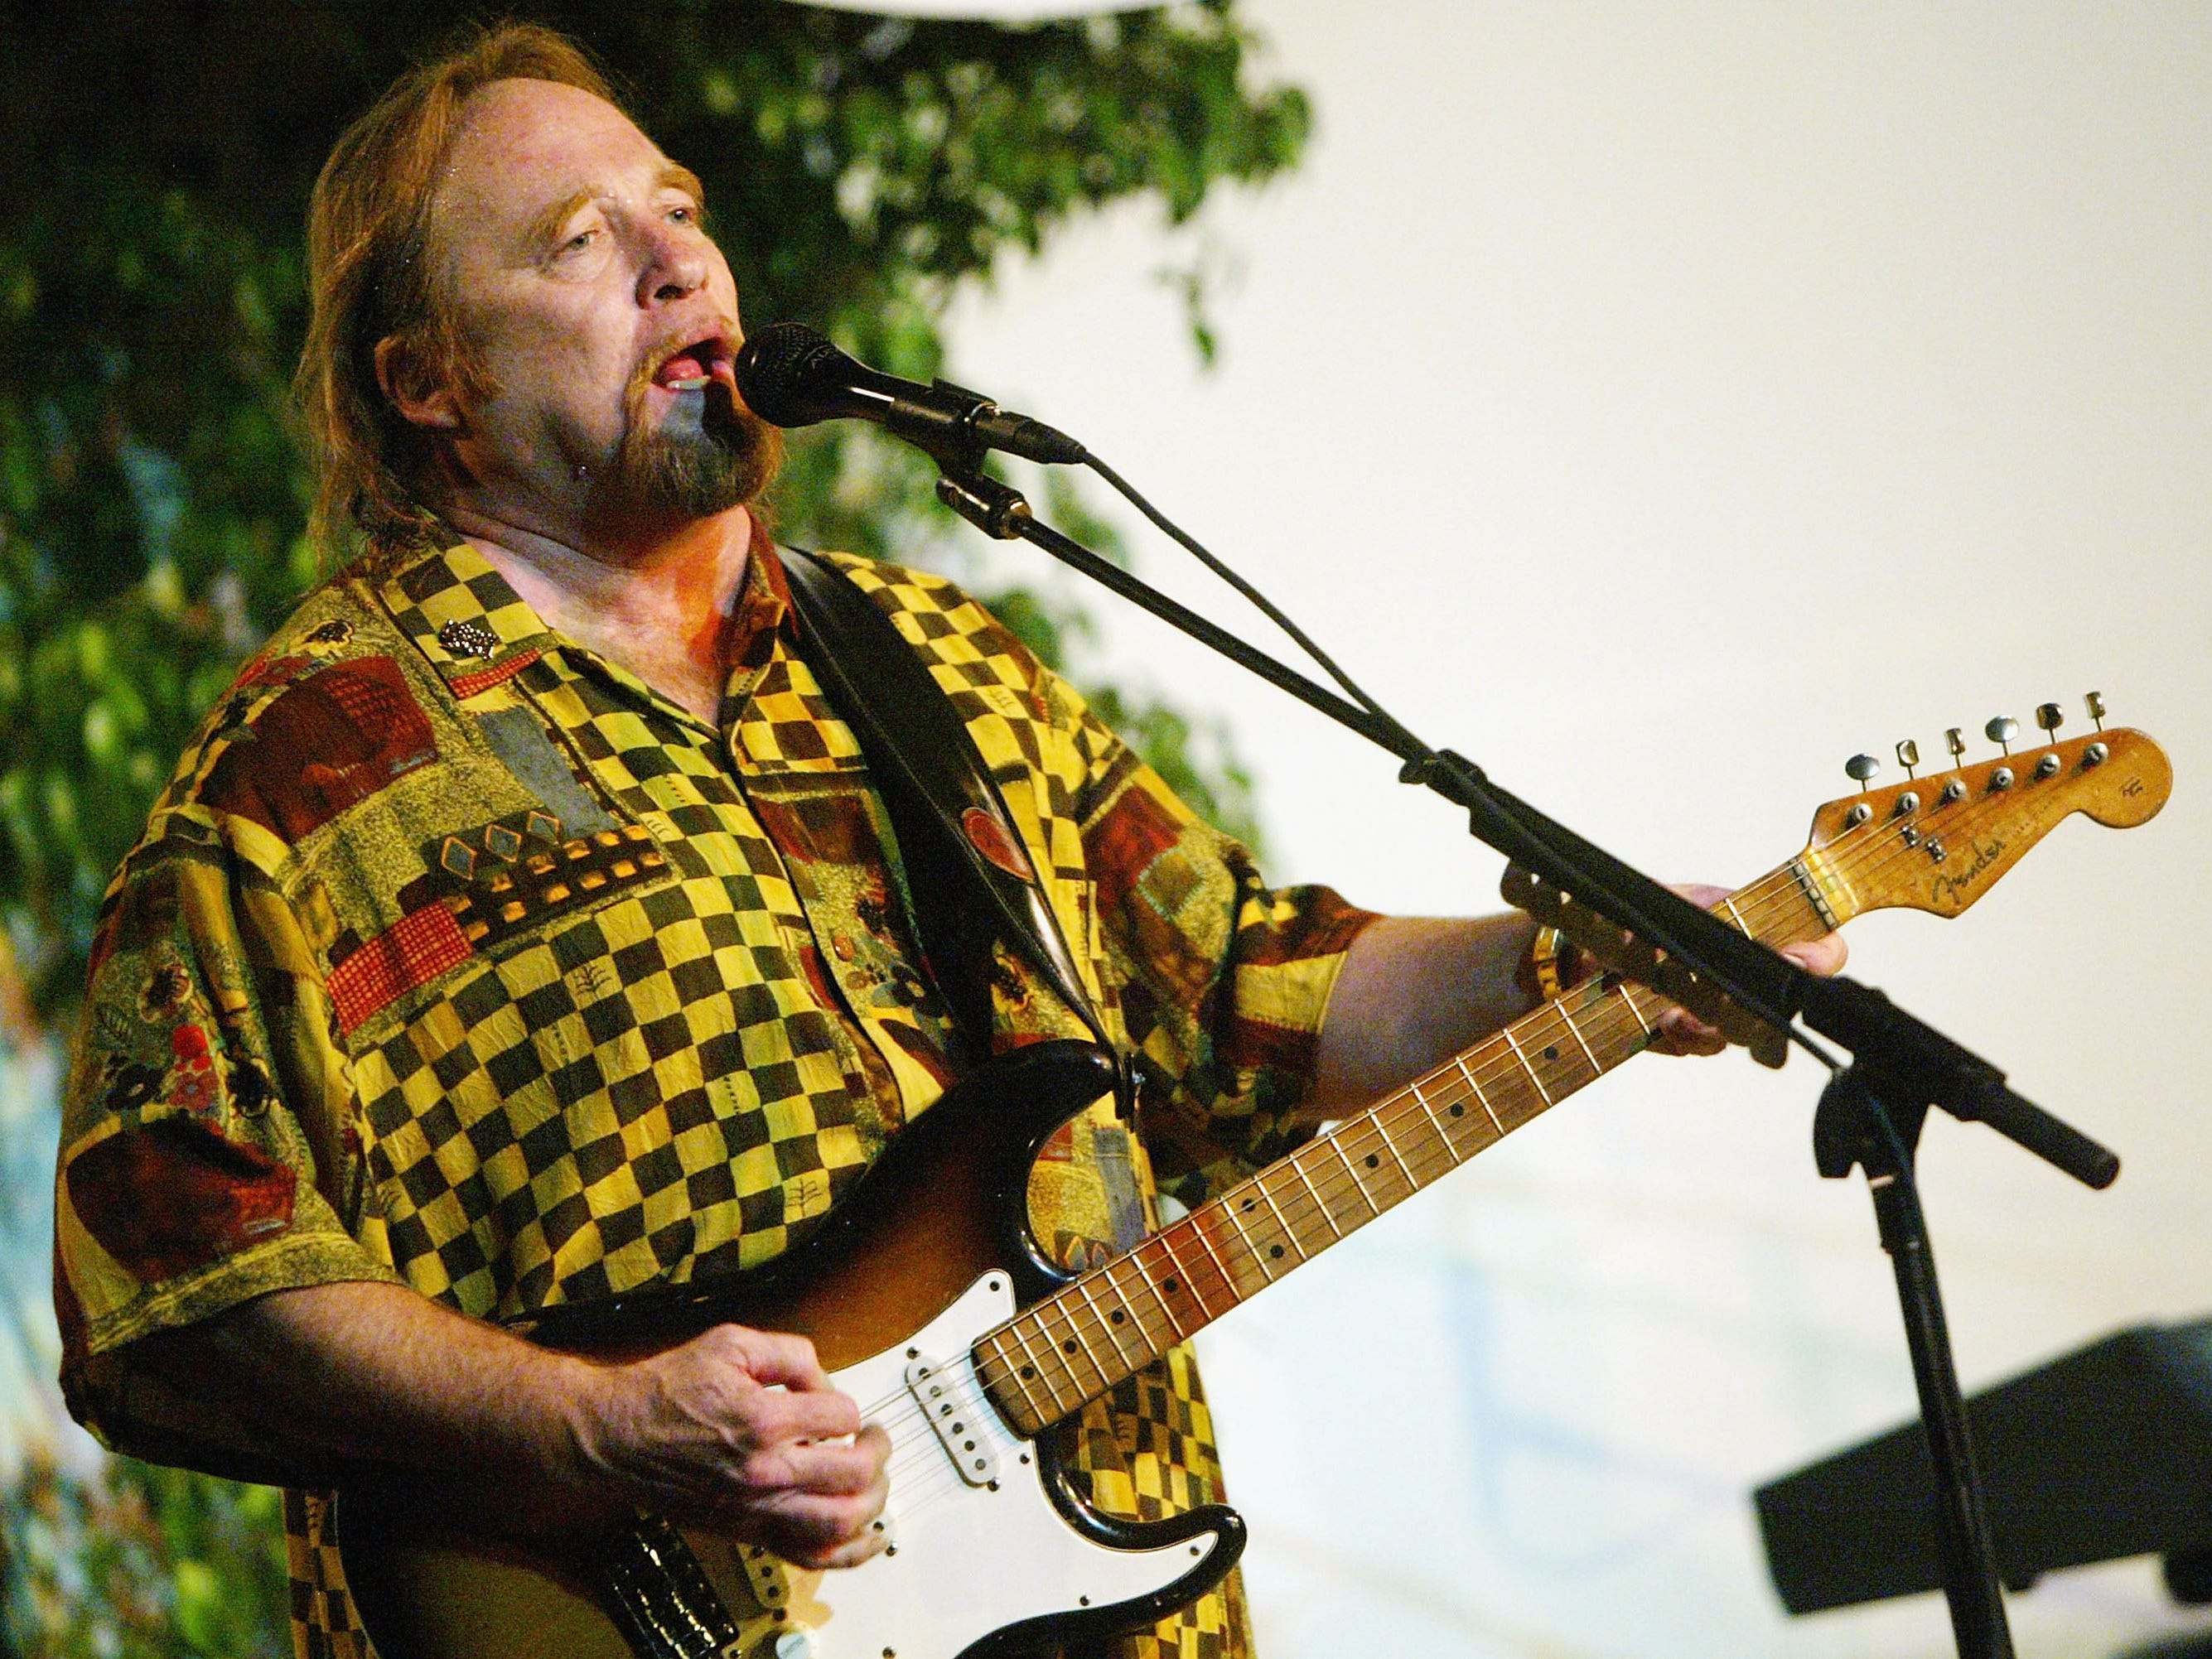 Stephen Stills performs at Rock The Vote's the Last Mile Acoustic Concert at the Crossroads School on October 27, 2004 in Santa Monica.